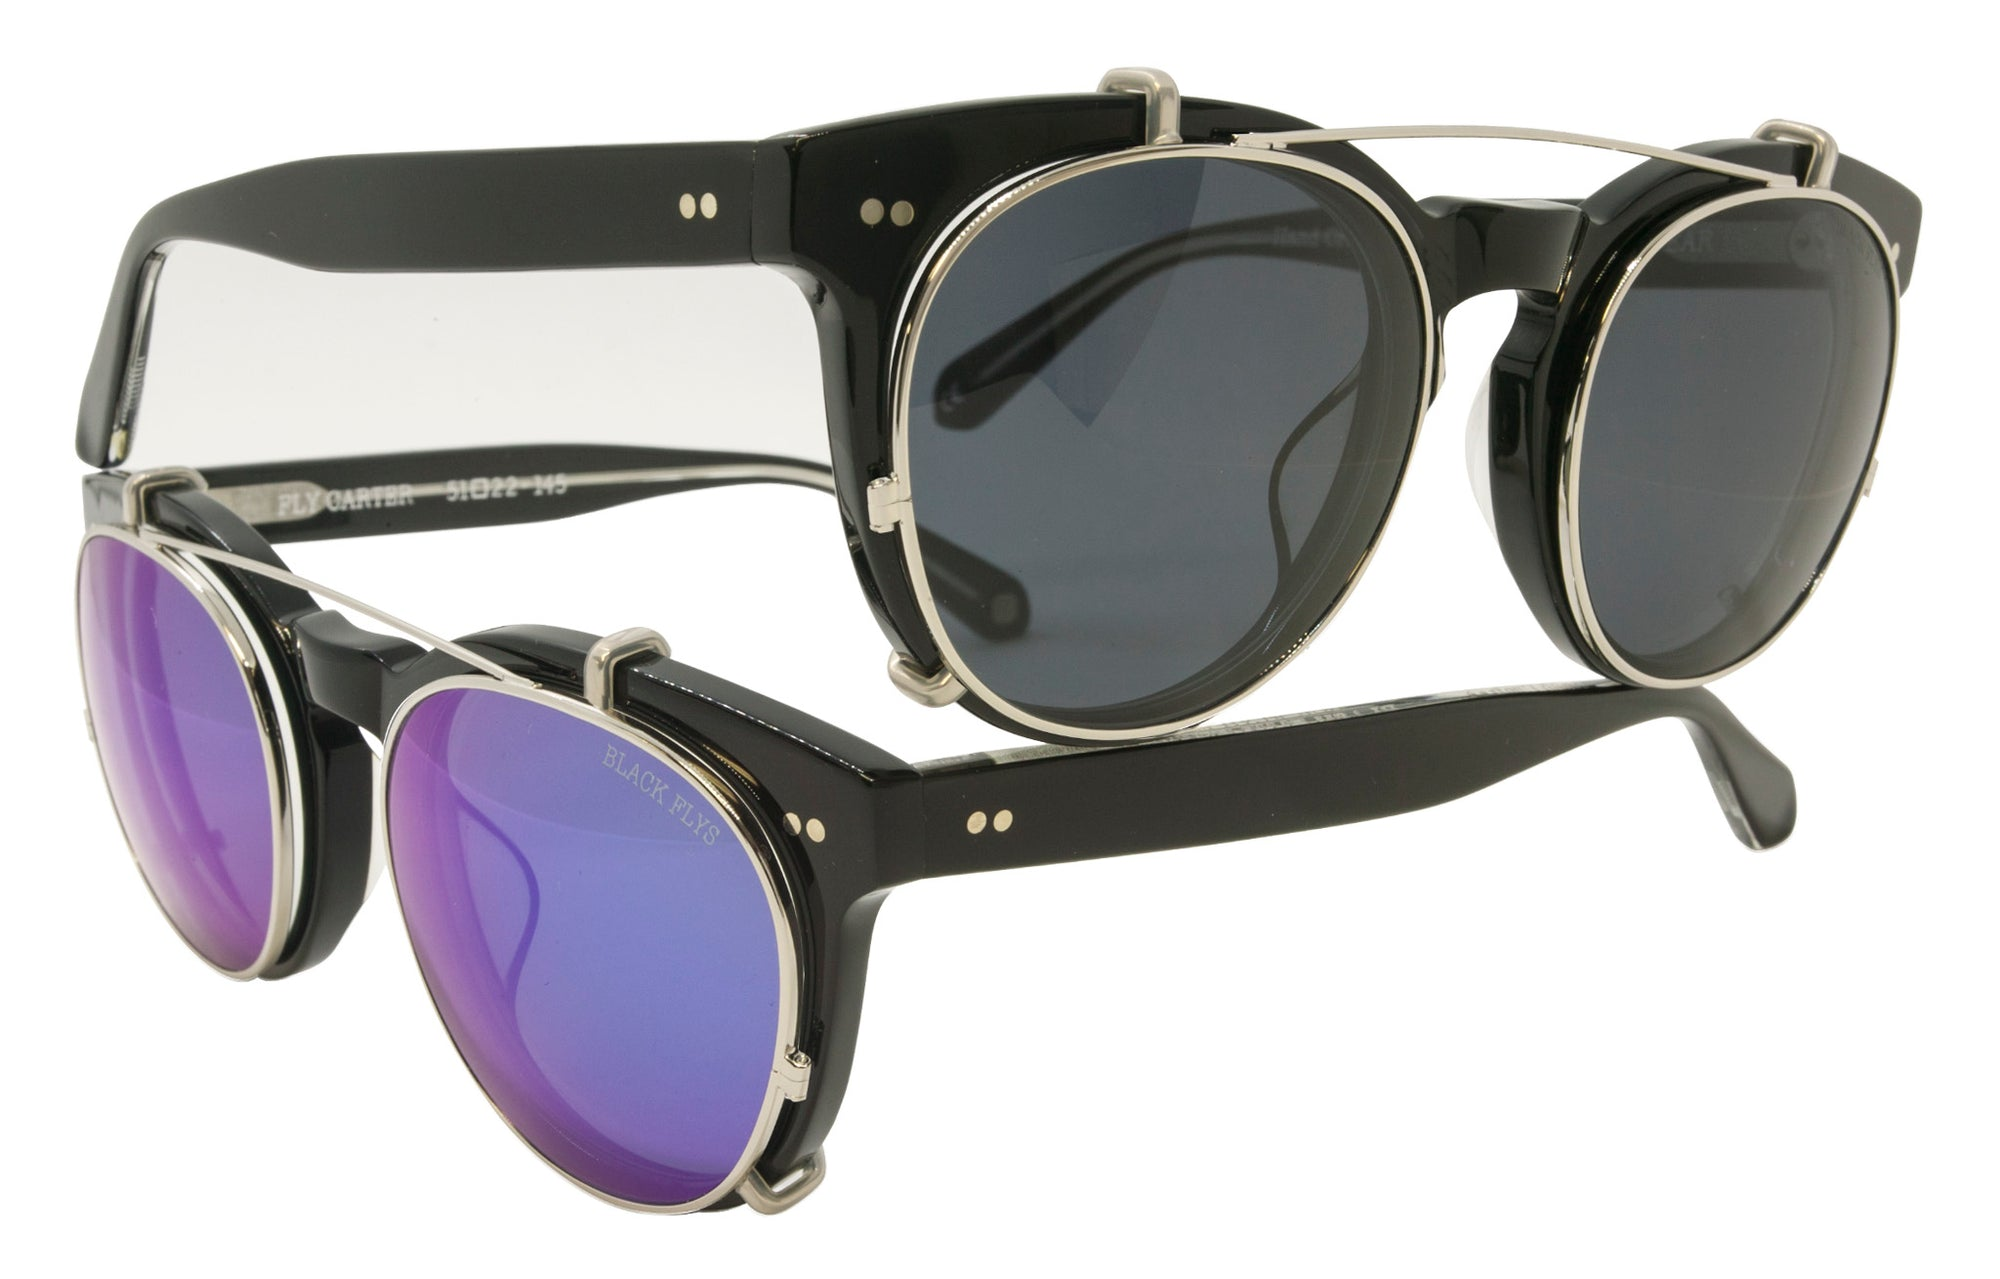 Fly Carter Clip On Sunglass